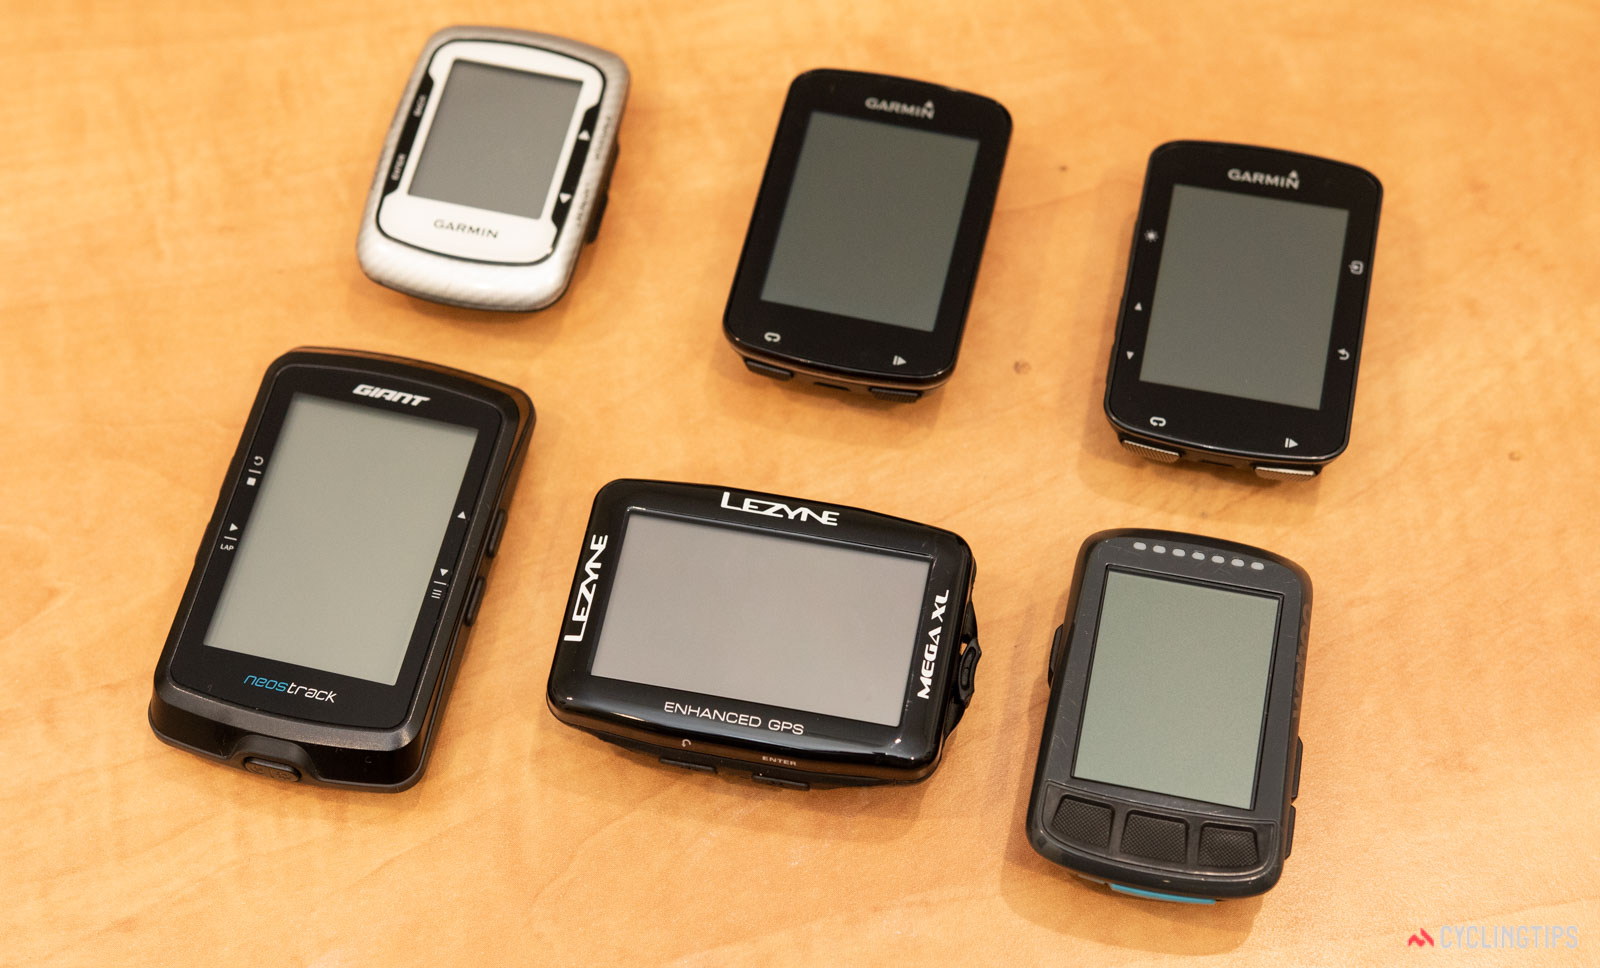 CT Recommends GPS Cycling Computers - popular choices